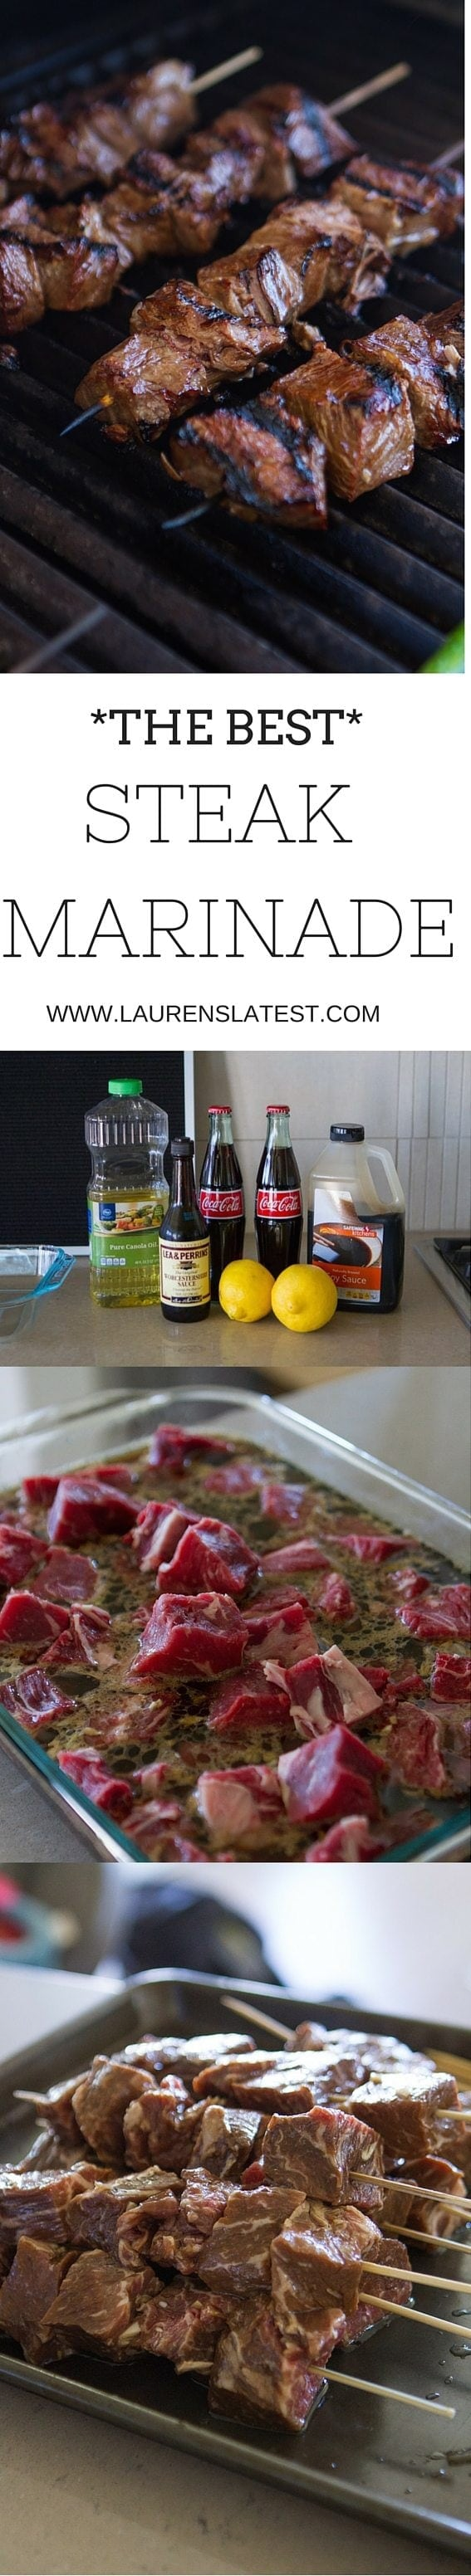 Holy moly, this is the best steak marinade EVER! If you want tender, juicy and flavorful meat every time, this is the steak marinade recipe for you.